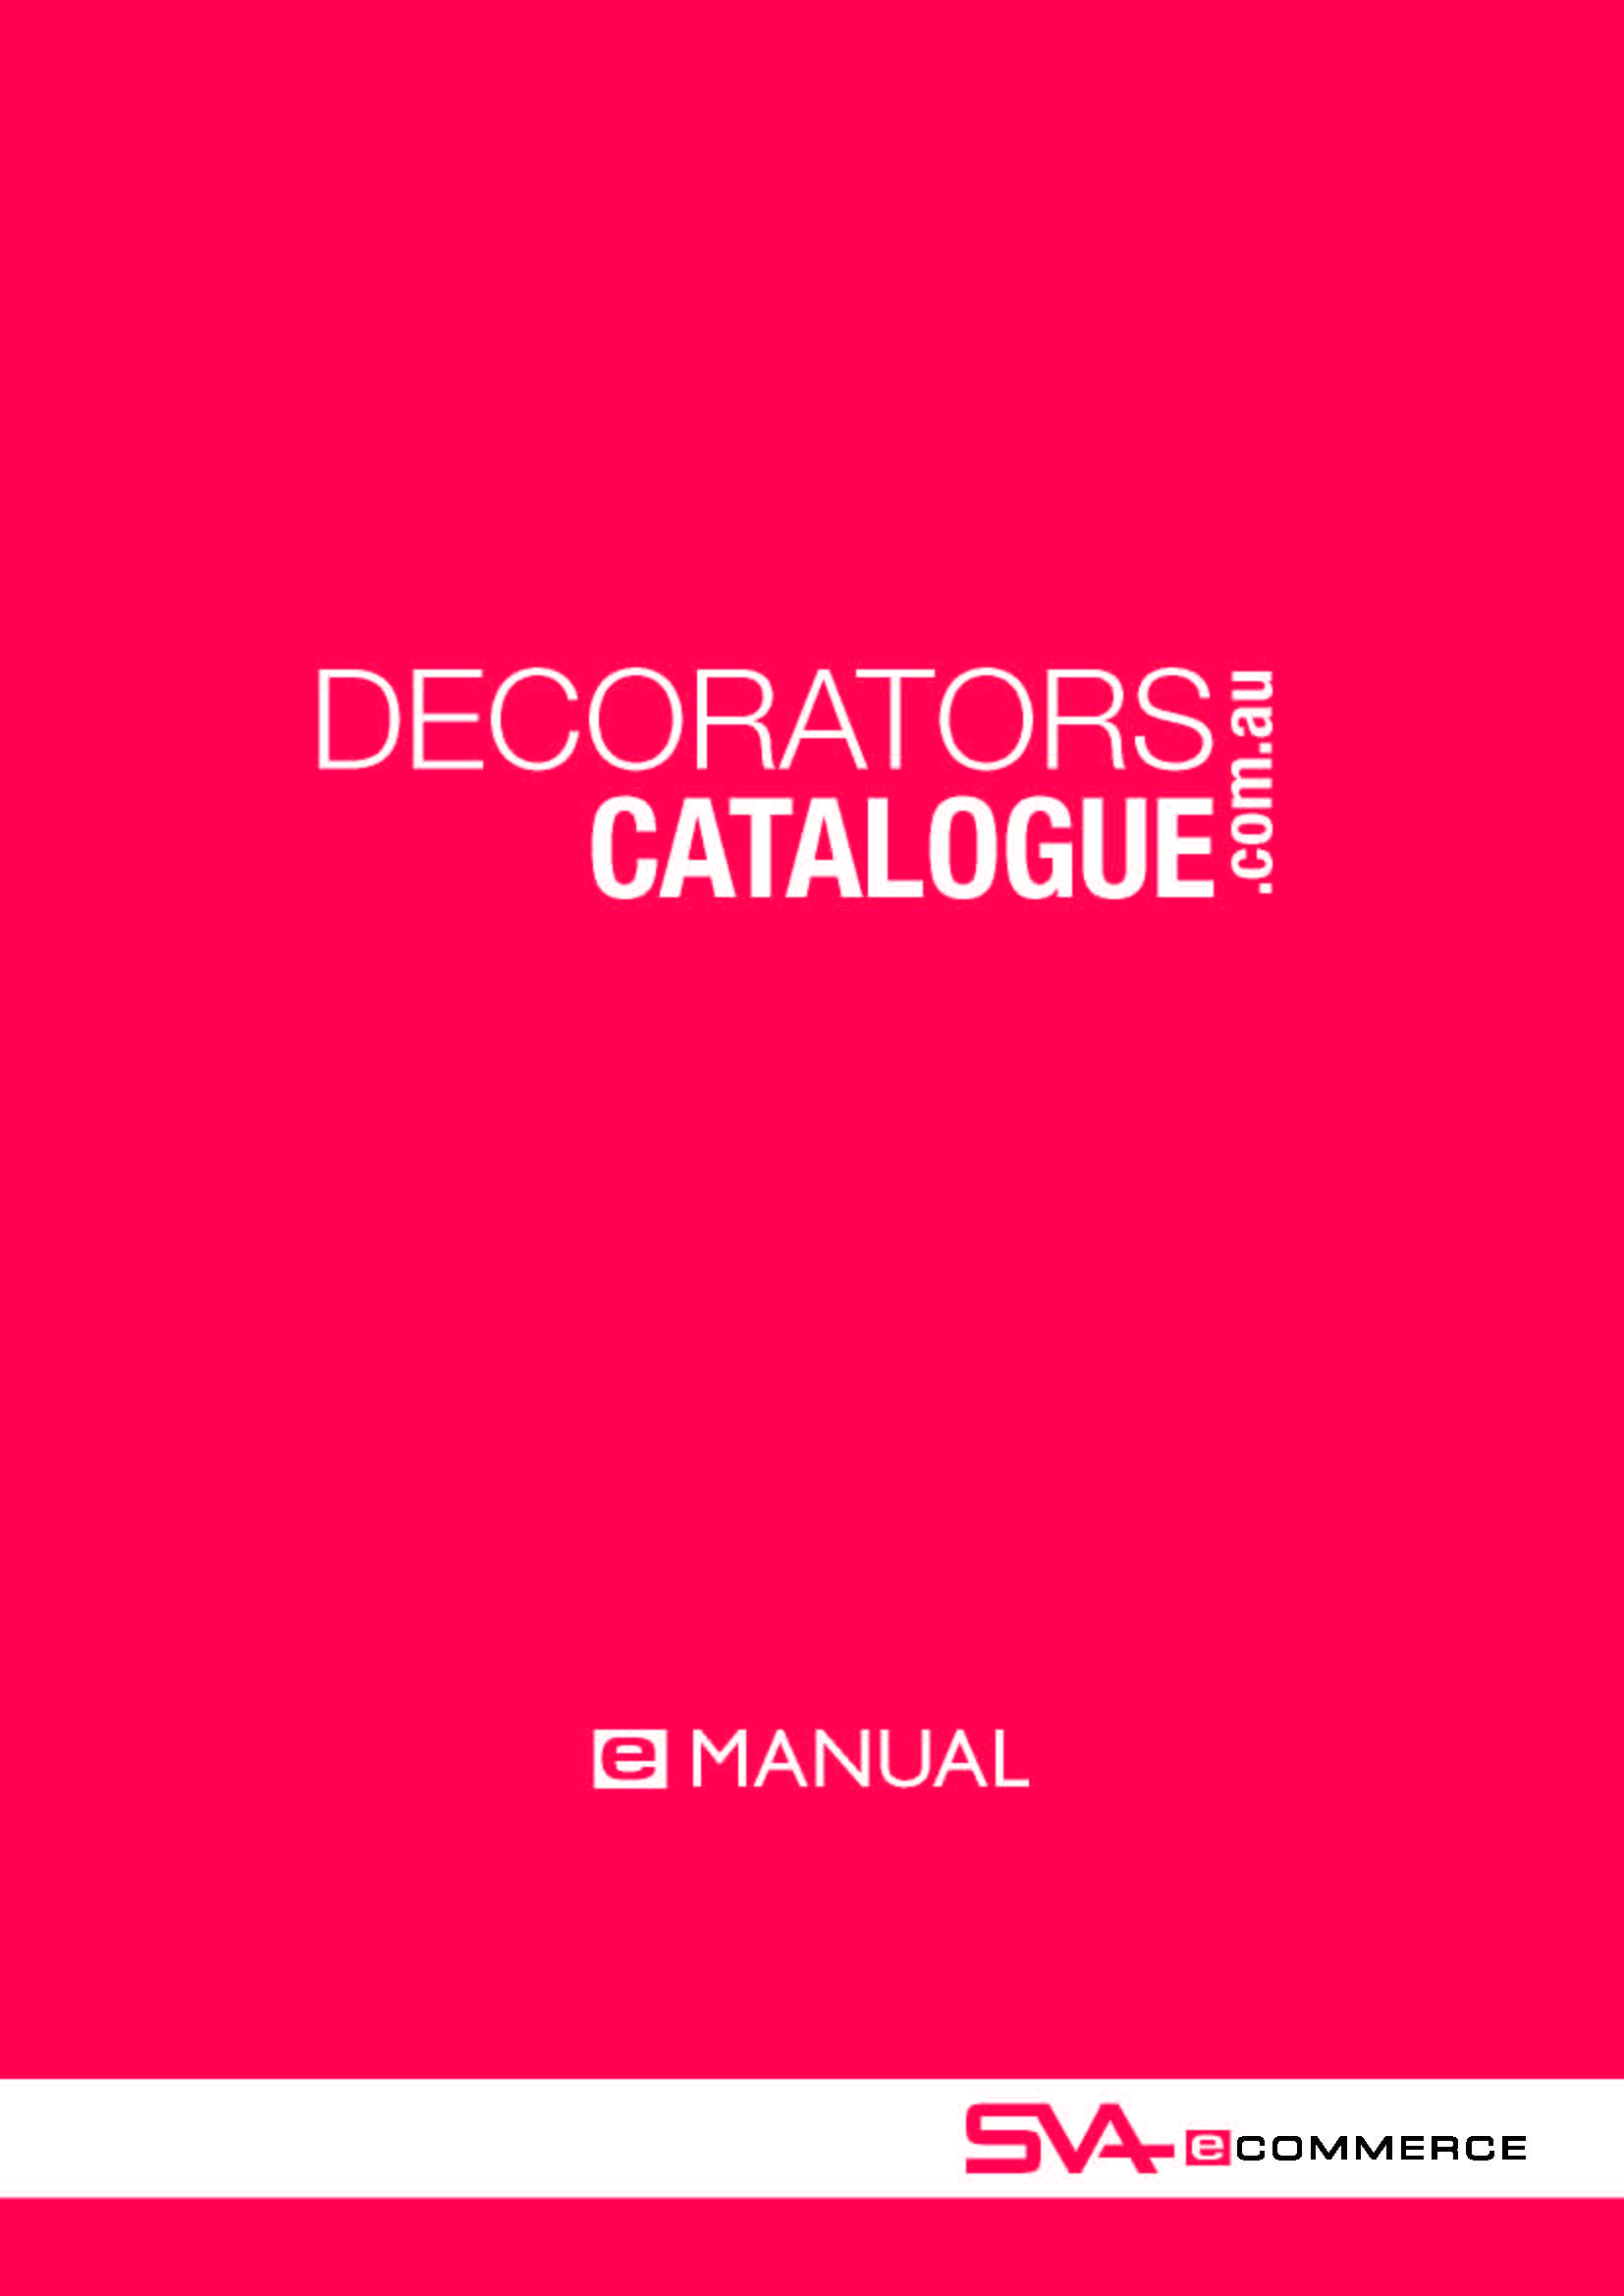 1-decorators-v2-cover-jan11.jpg